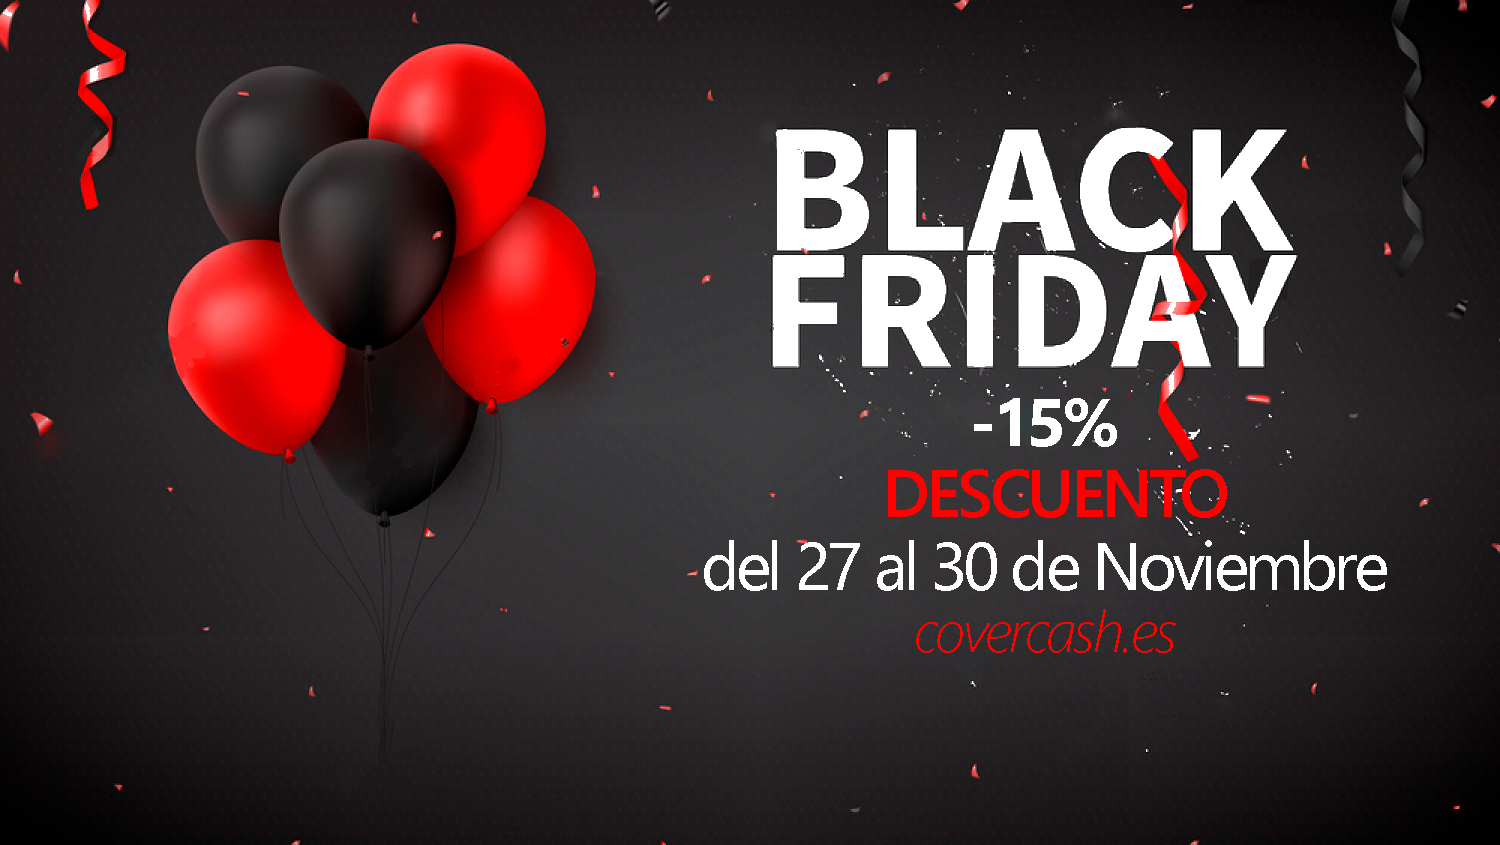 ¡El Black Friday llega a Covercash!